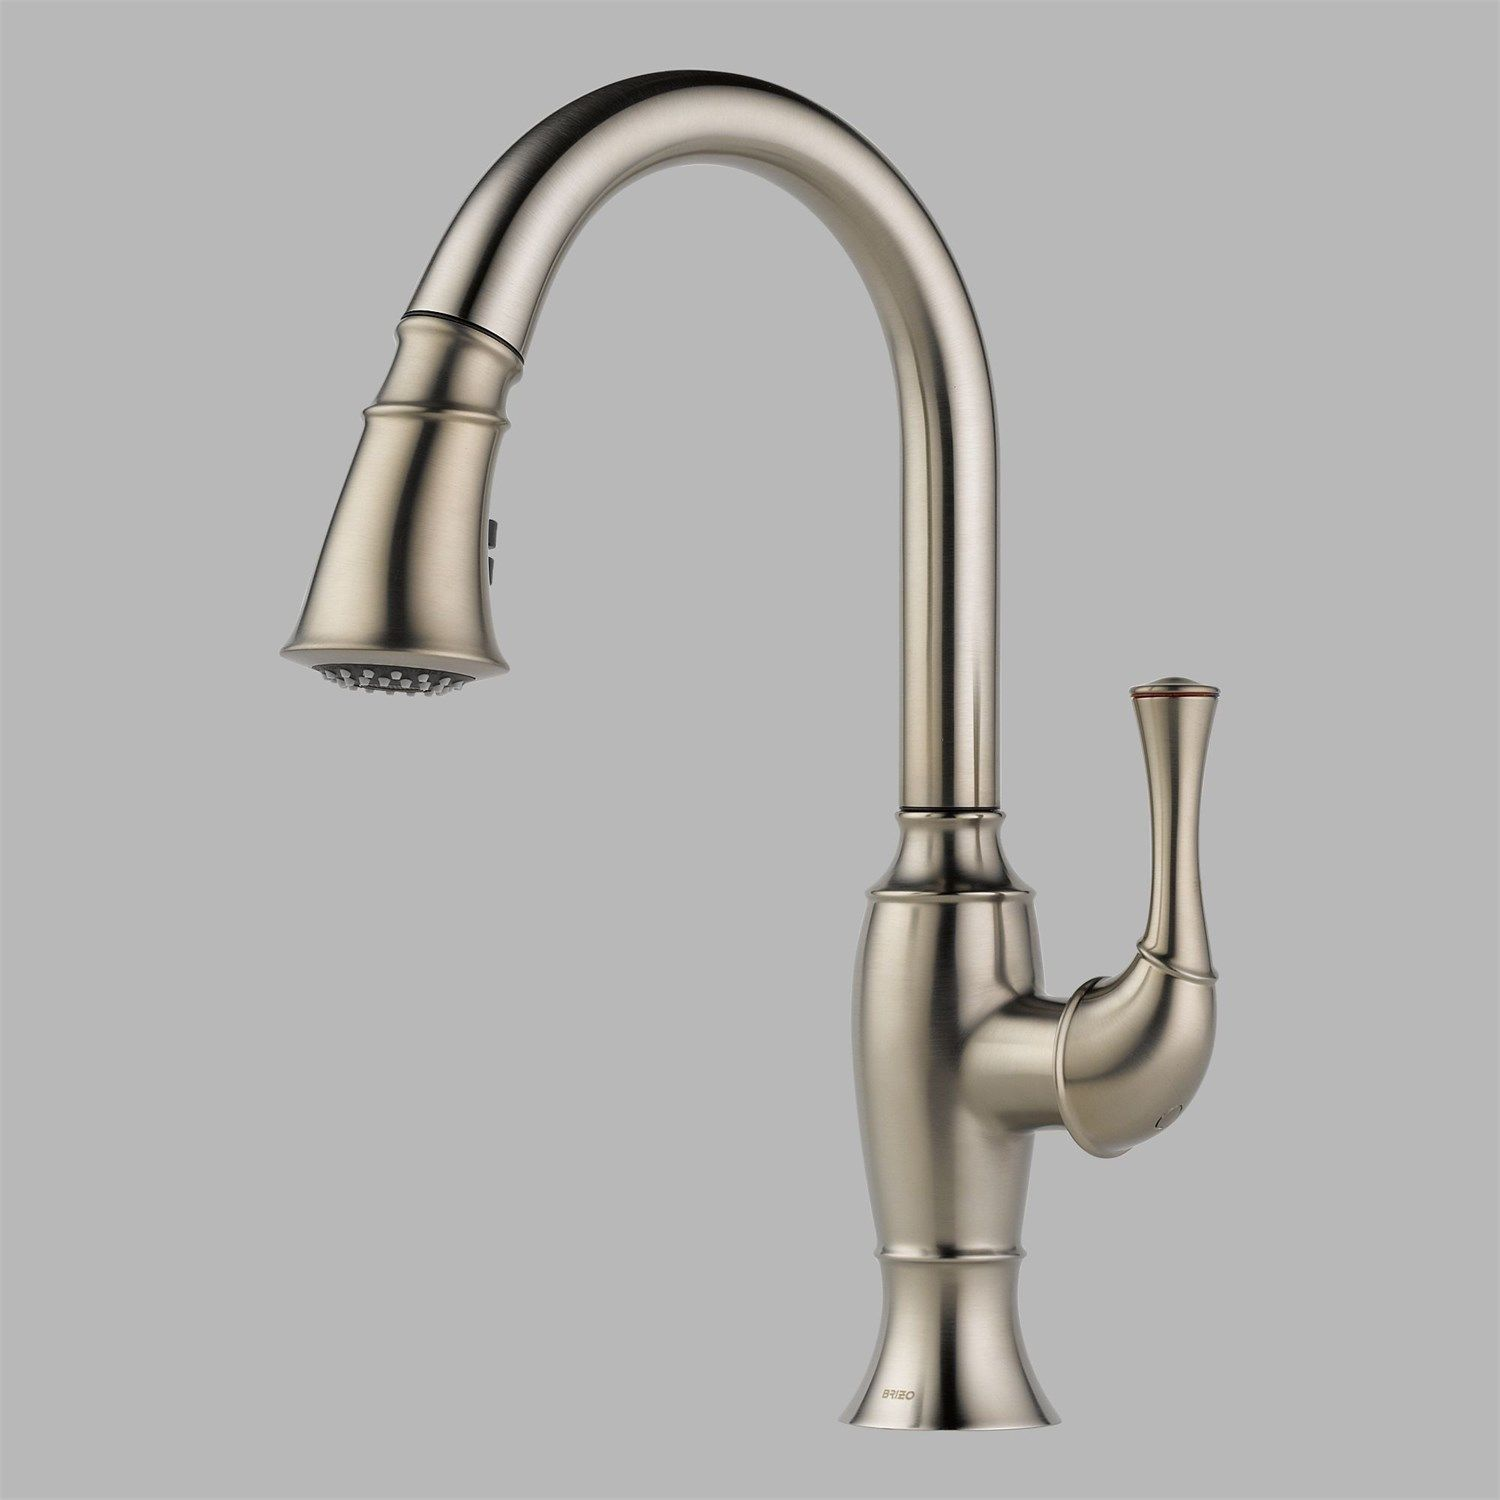 Brio Faucets   Home Furniture One   Pinterest   Faucet and Window